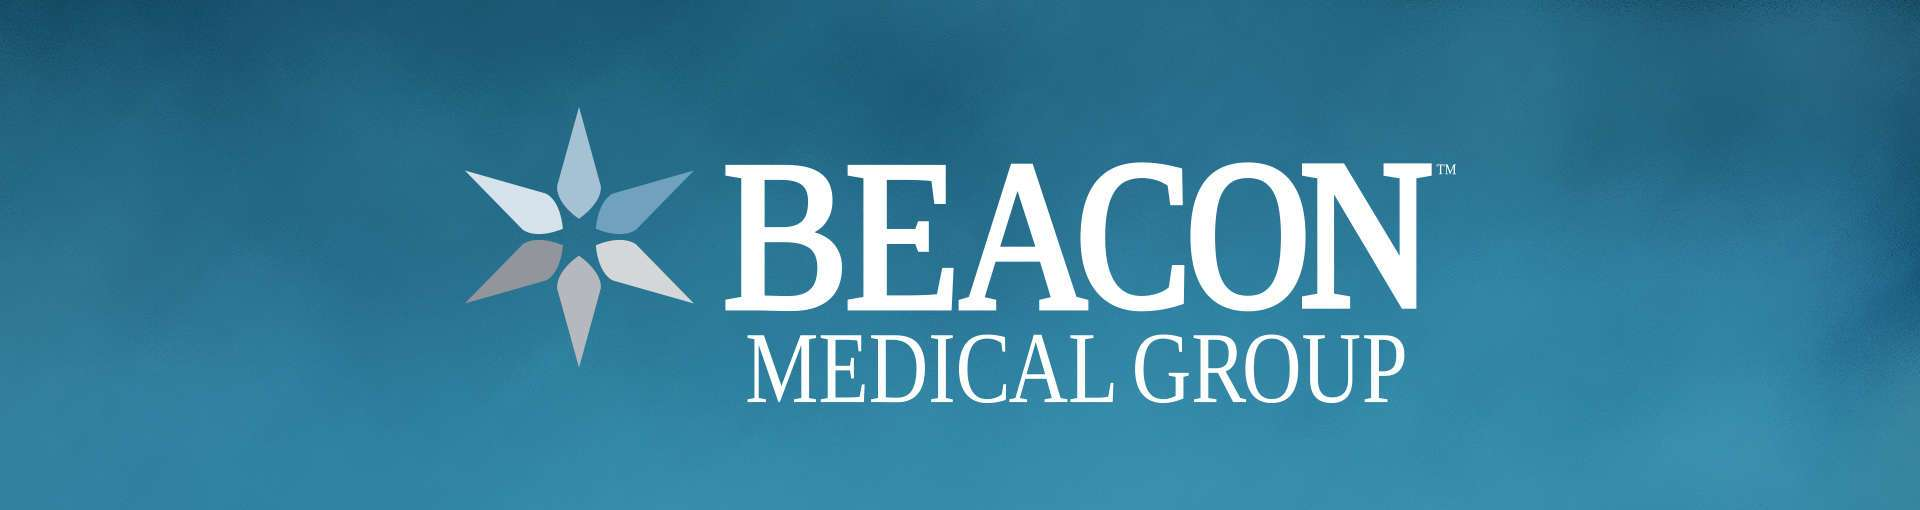 Beacon Medical Group Internal Medicine Osolo Road image 0